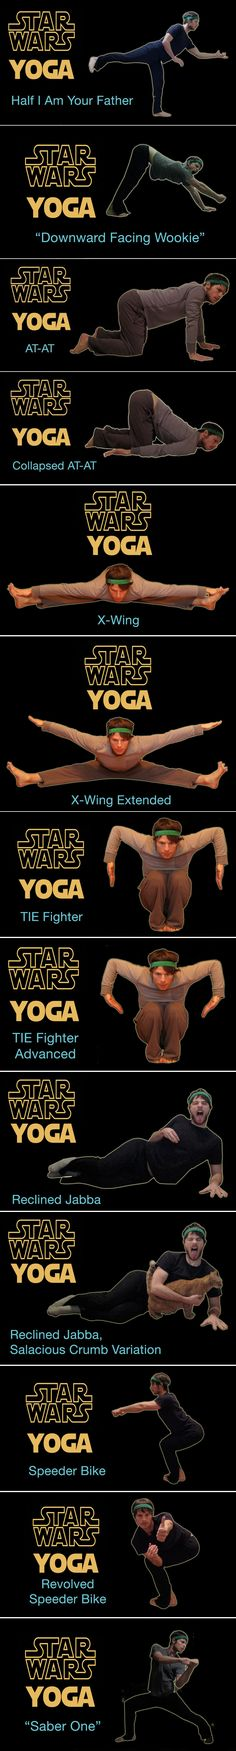 .... I am now doing yoga